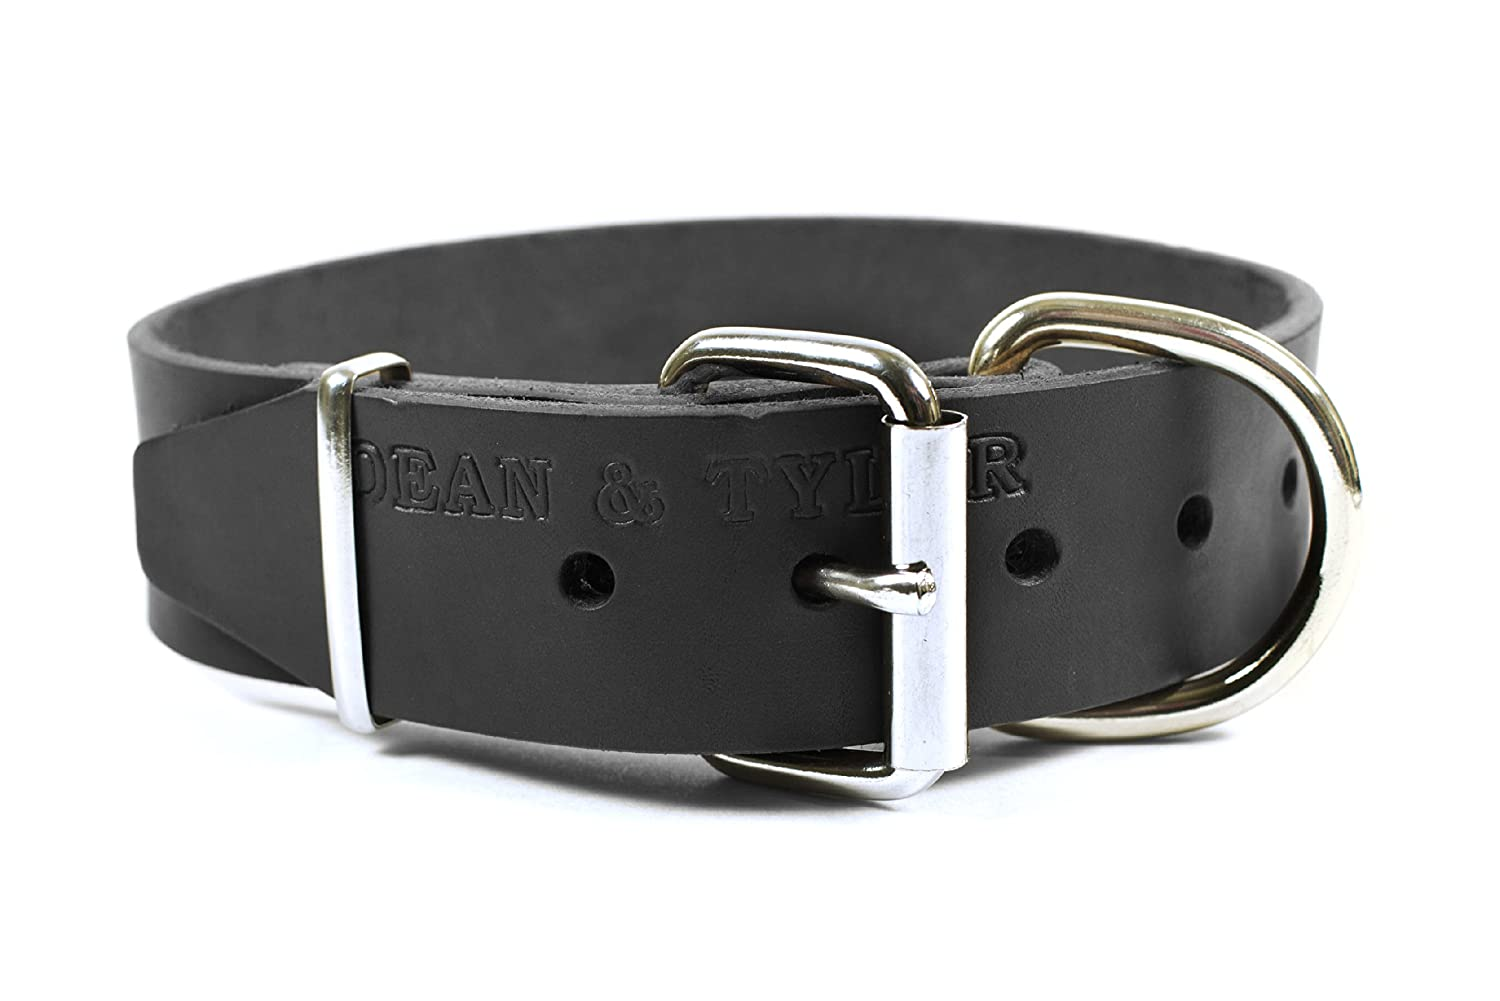 Dean & Tyler B and B  Basic Leather Dog Collar with Strong Nickel Hardware, Black, Size 26-Inch by 2-Inch Fits Neck 24-Inch to 28-Inch